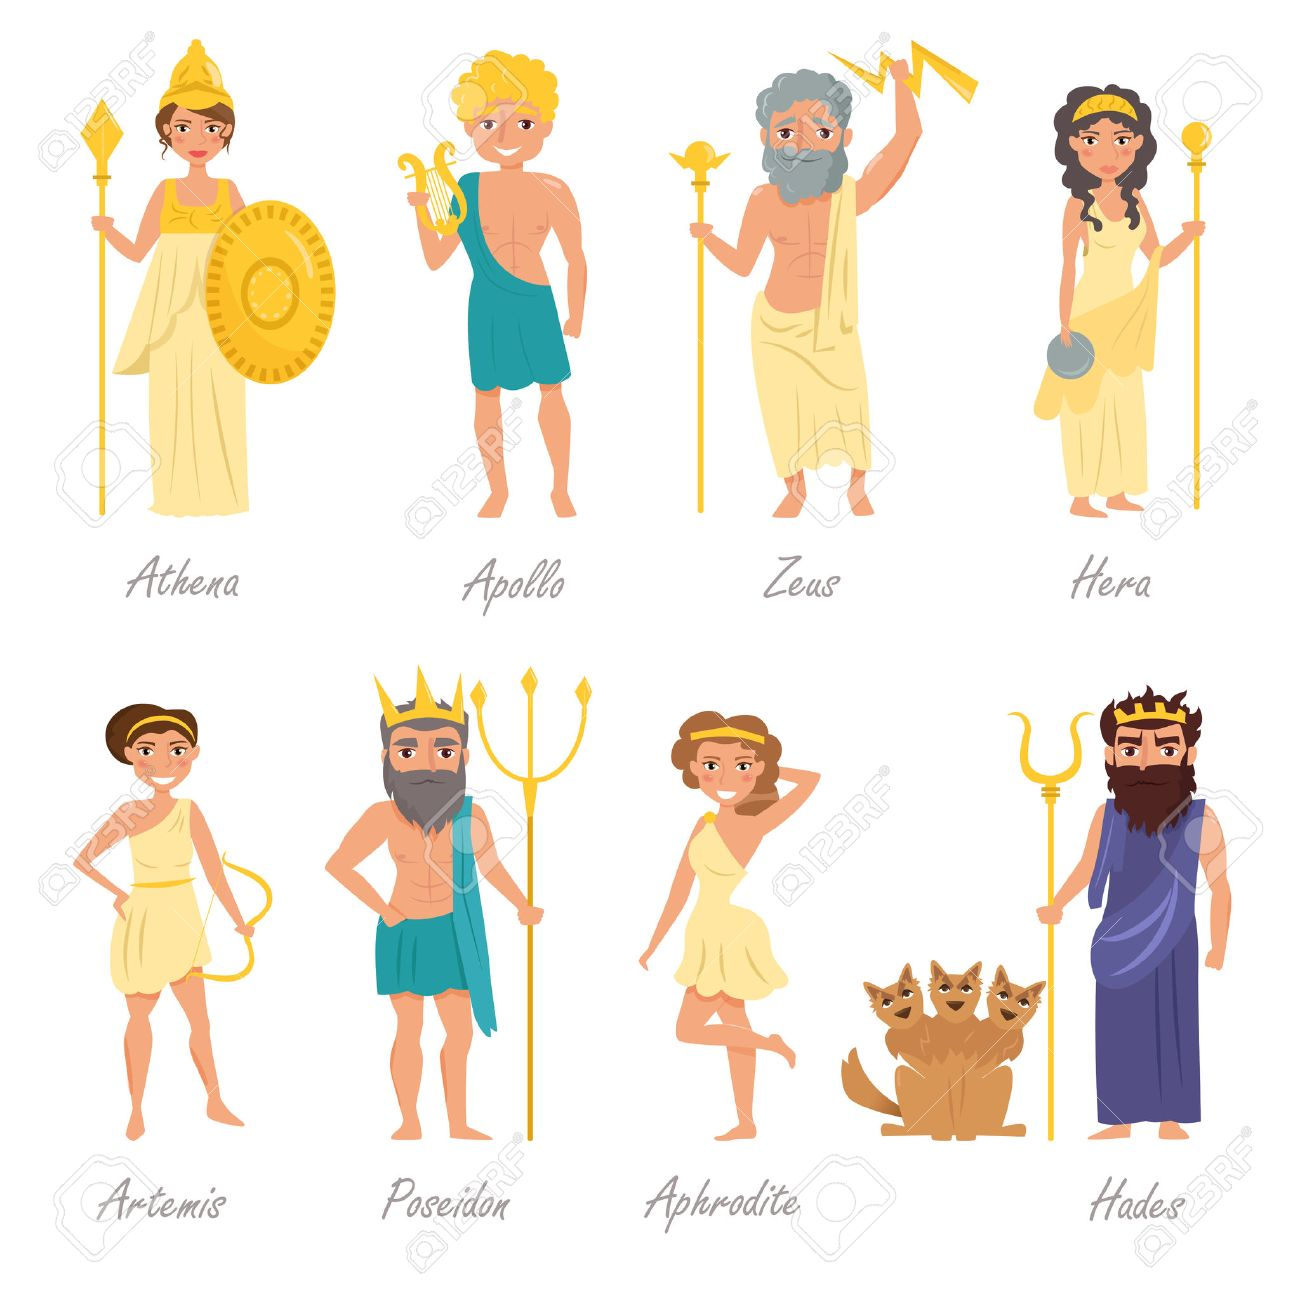 666 pantheon stock vector illustration and royalty free pantheon clipart rh 123rf com